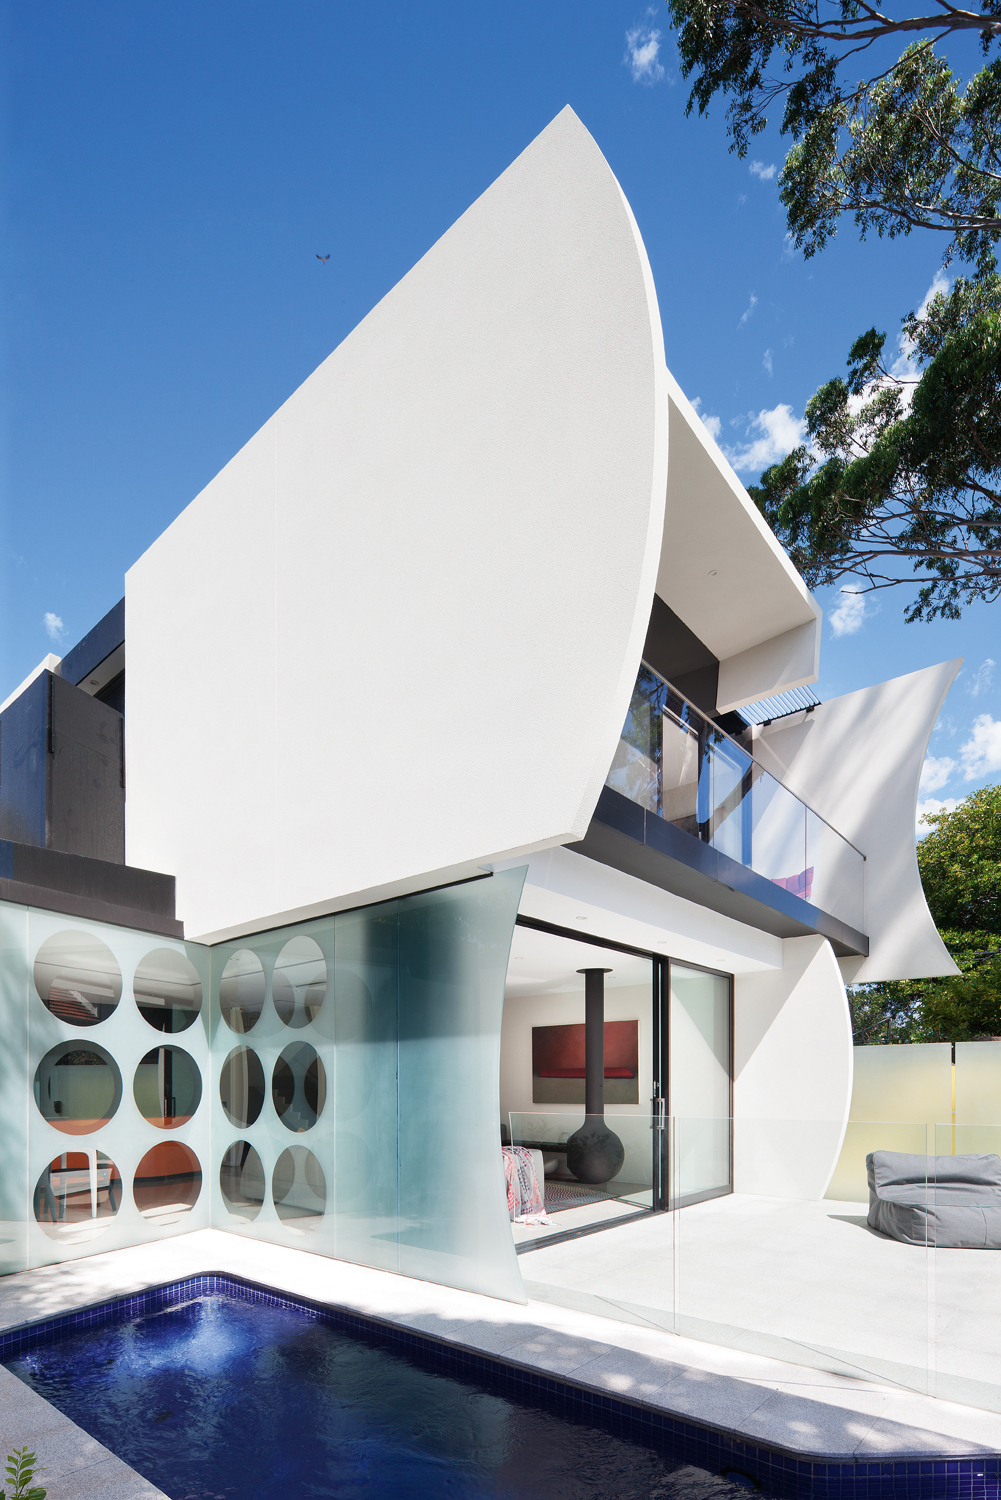 Grand Designs Australia: Pursuit of Happiness - Completehome